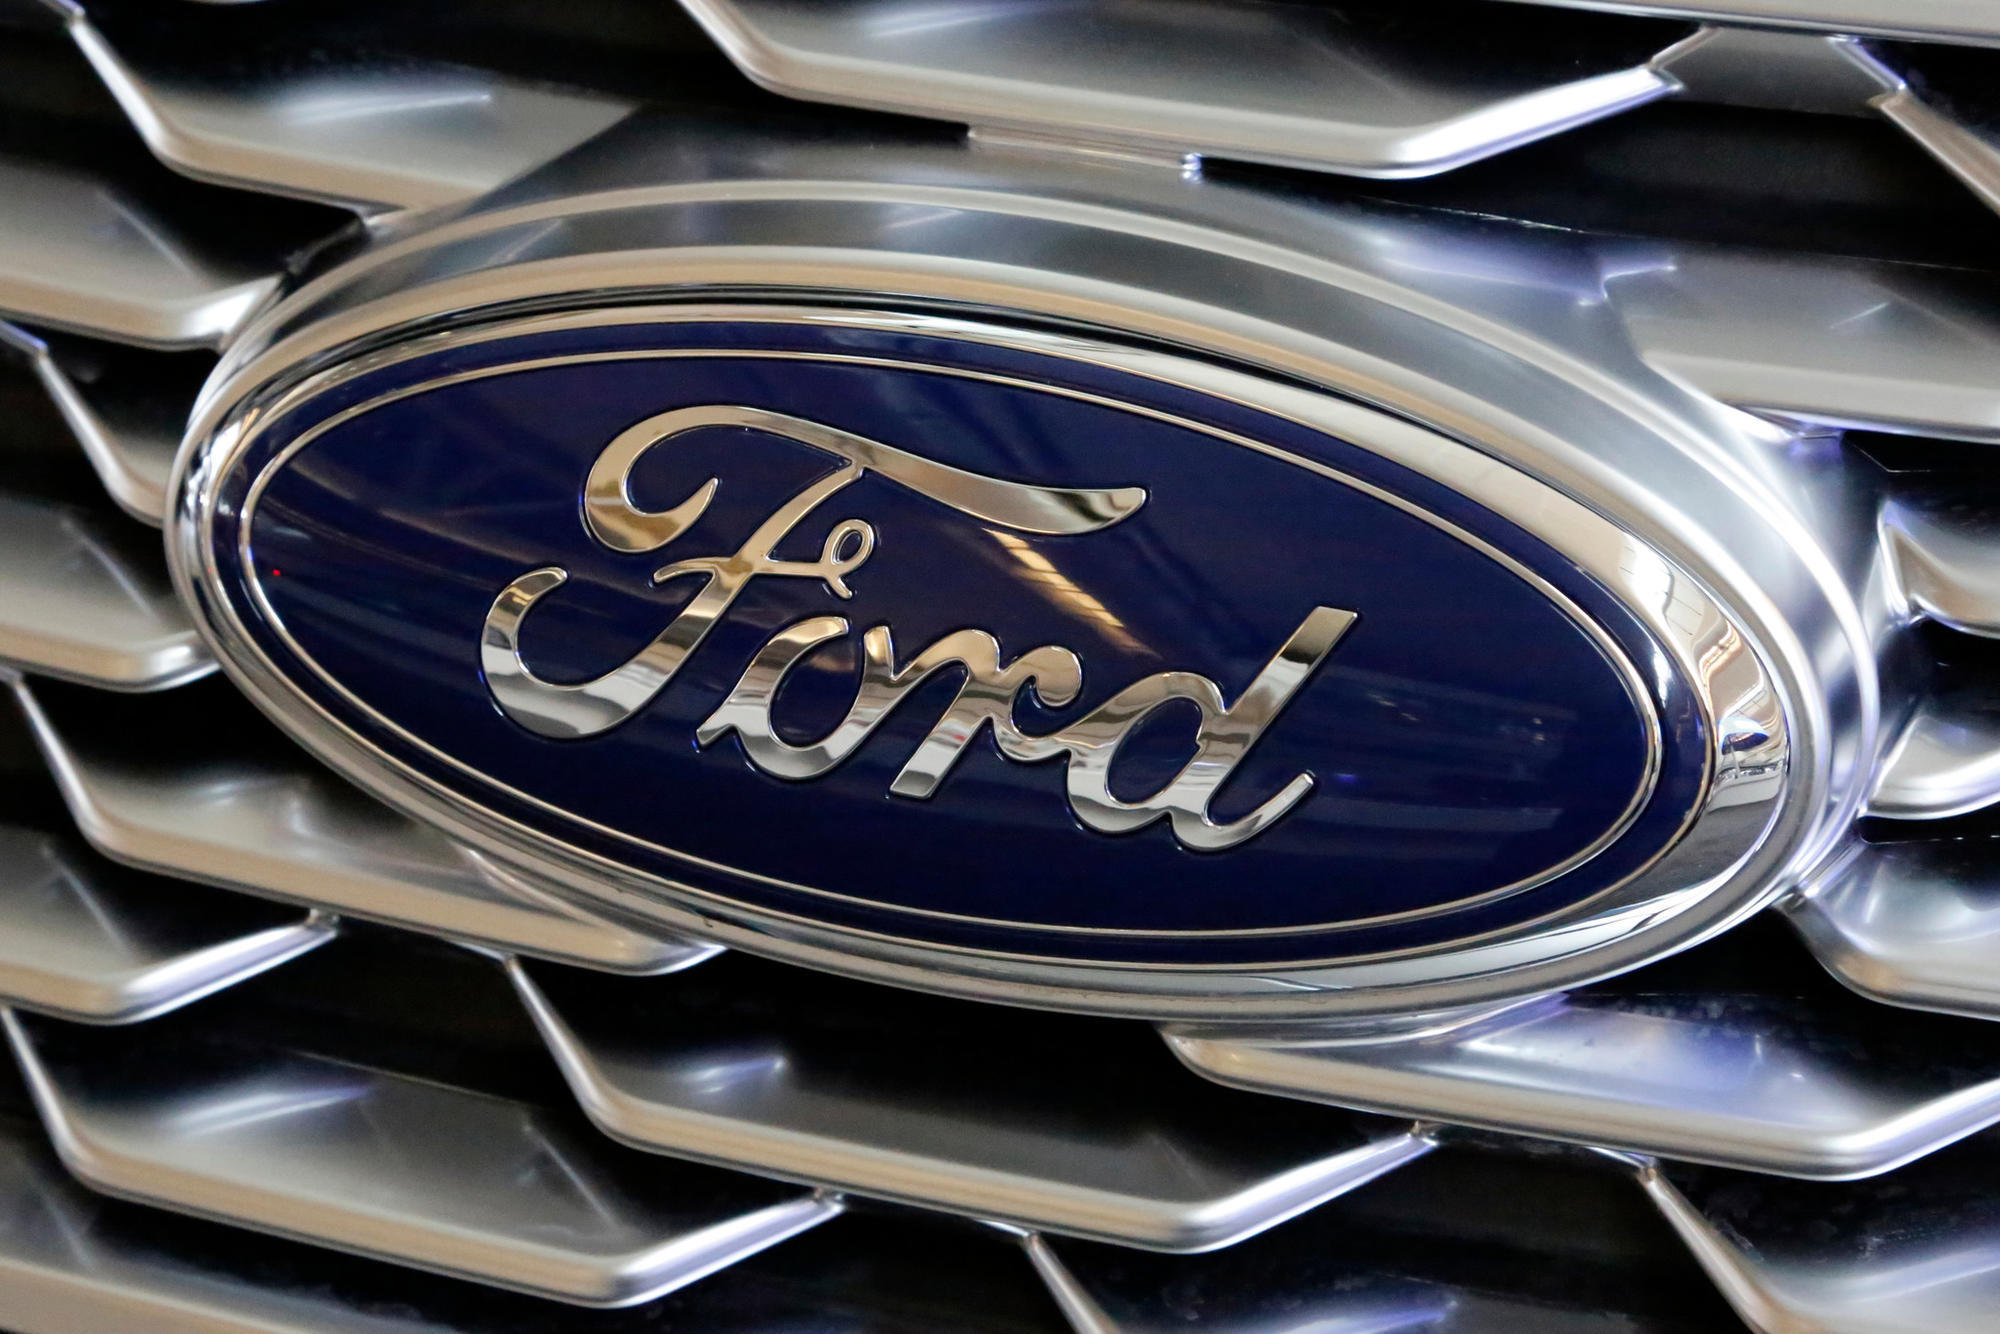 Hybrid Car Lineup Wallpaper 2018 Ford To Discontinue All Cars Except For Mustang And Focus